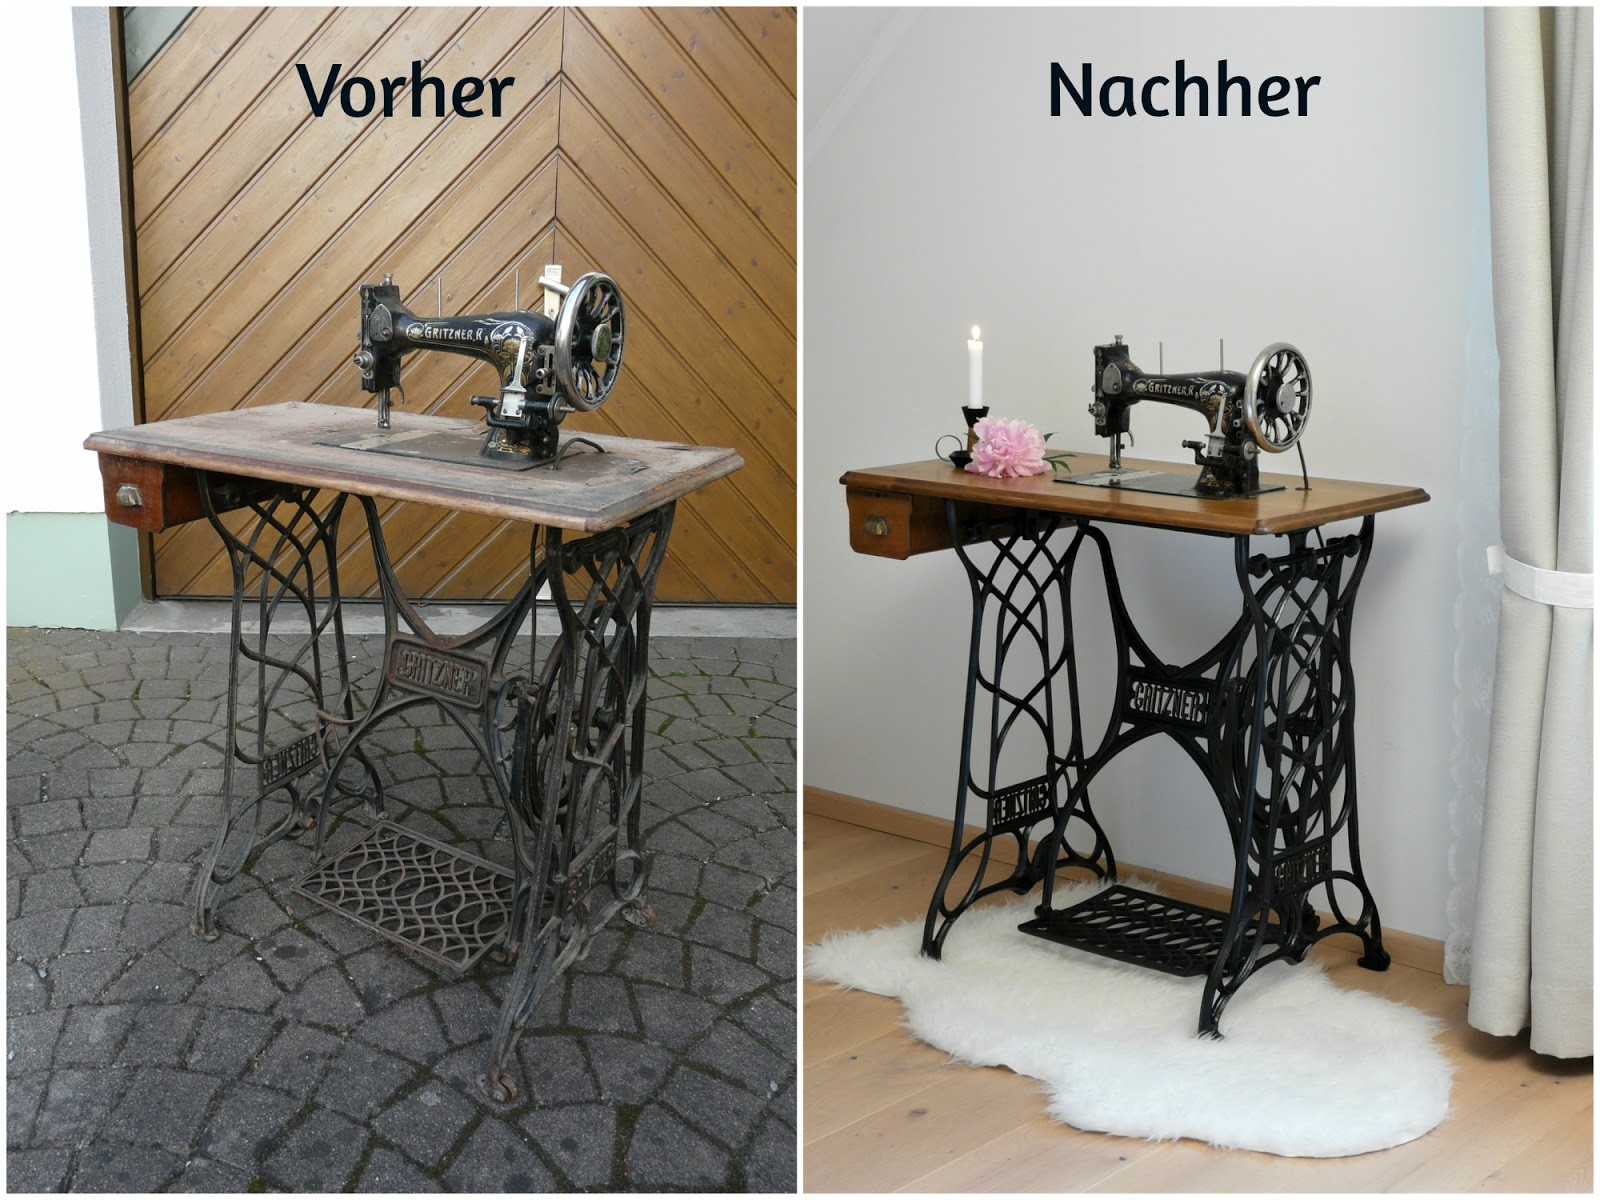 dekoelement alte n hmaschine gritzner r bekommt neues aussehen. Black Bedroom Furniture Sets. Home Design Ideas